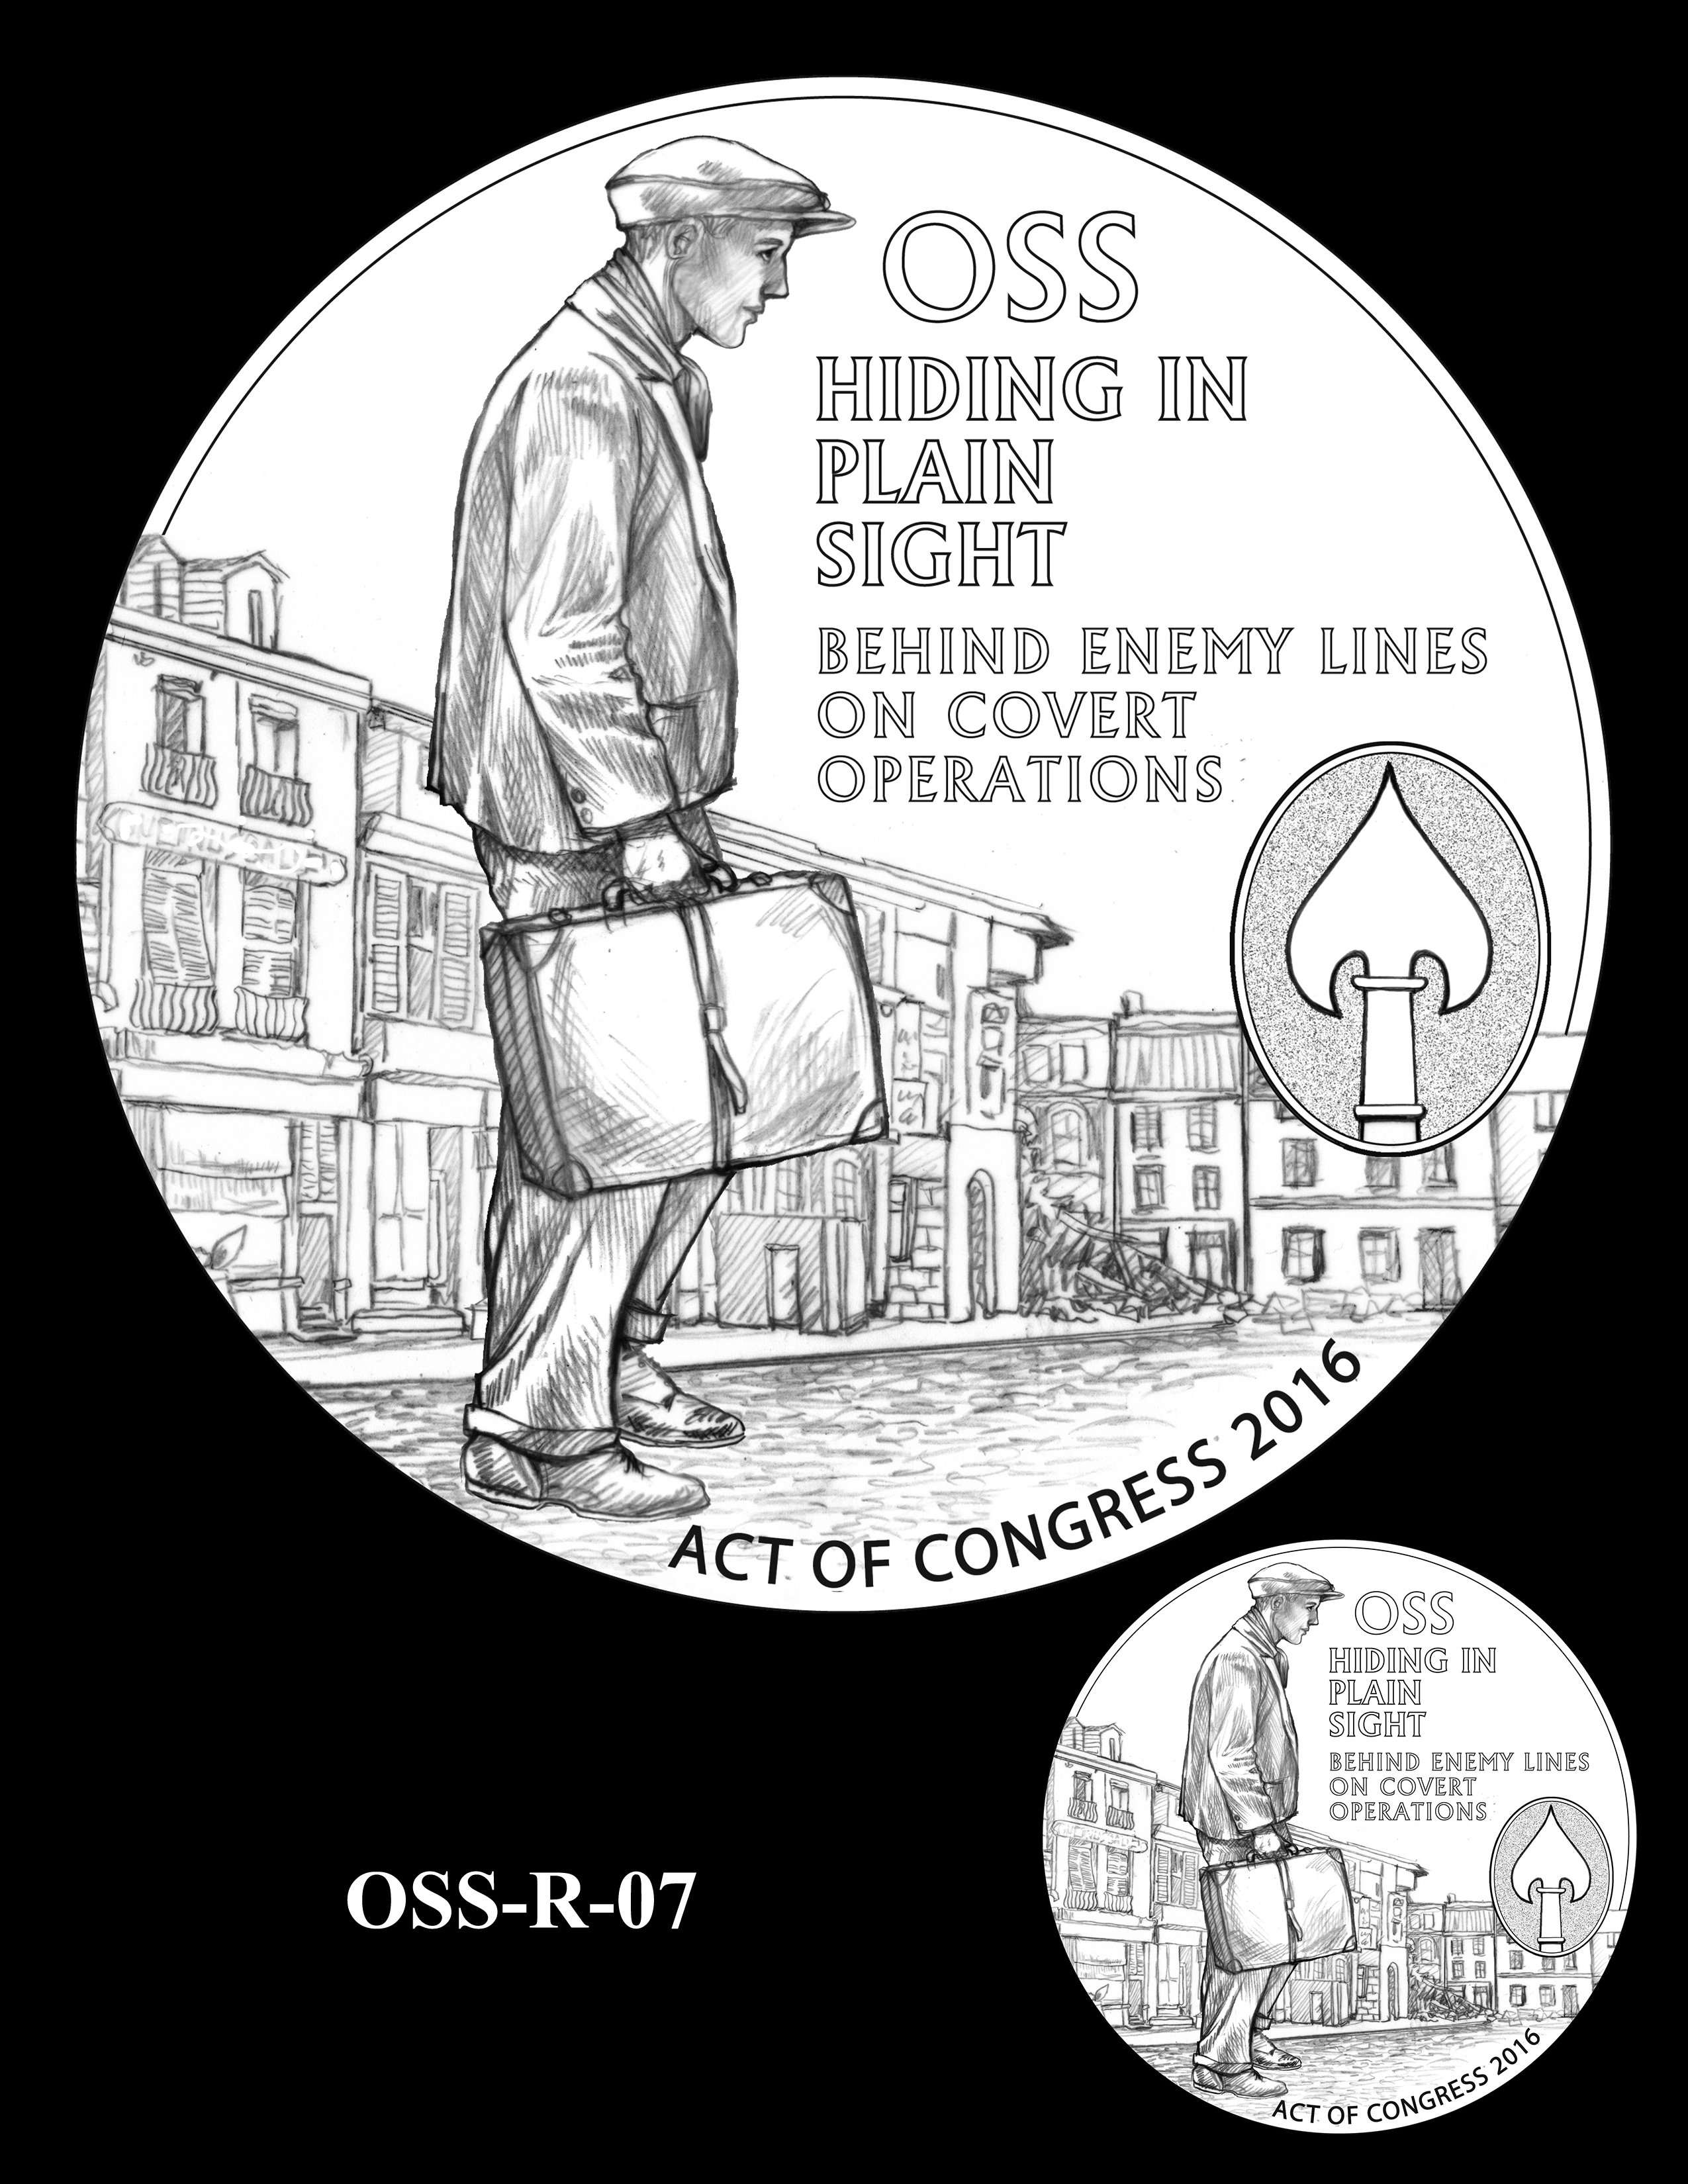 OSS-R-07 -- Office of Strategic Services Congressional Gold Medal